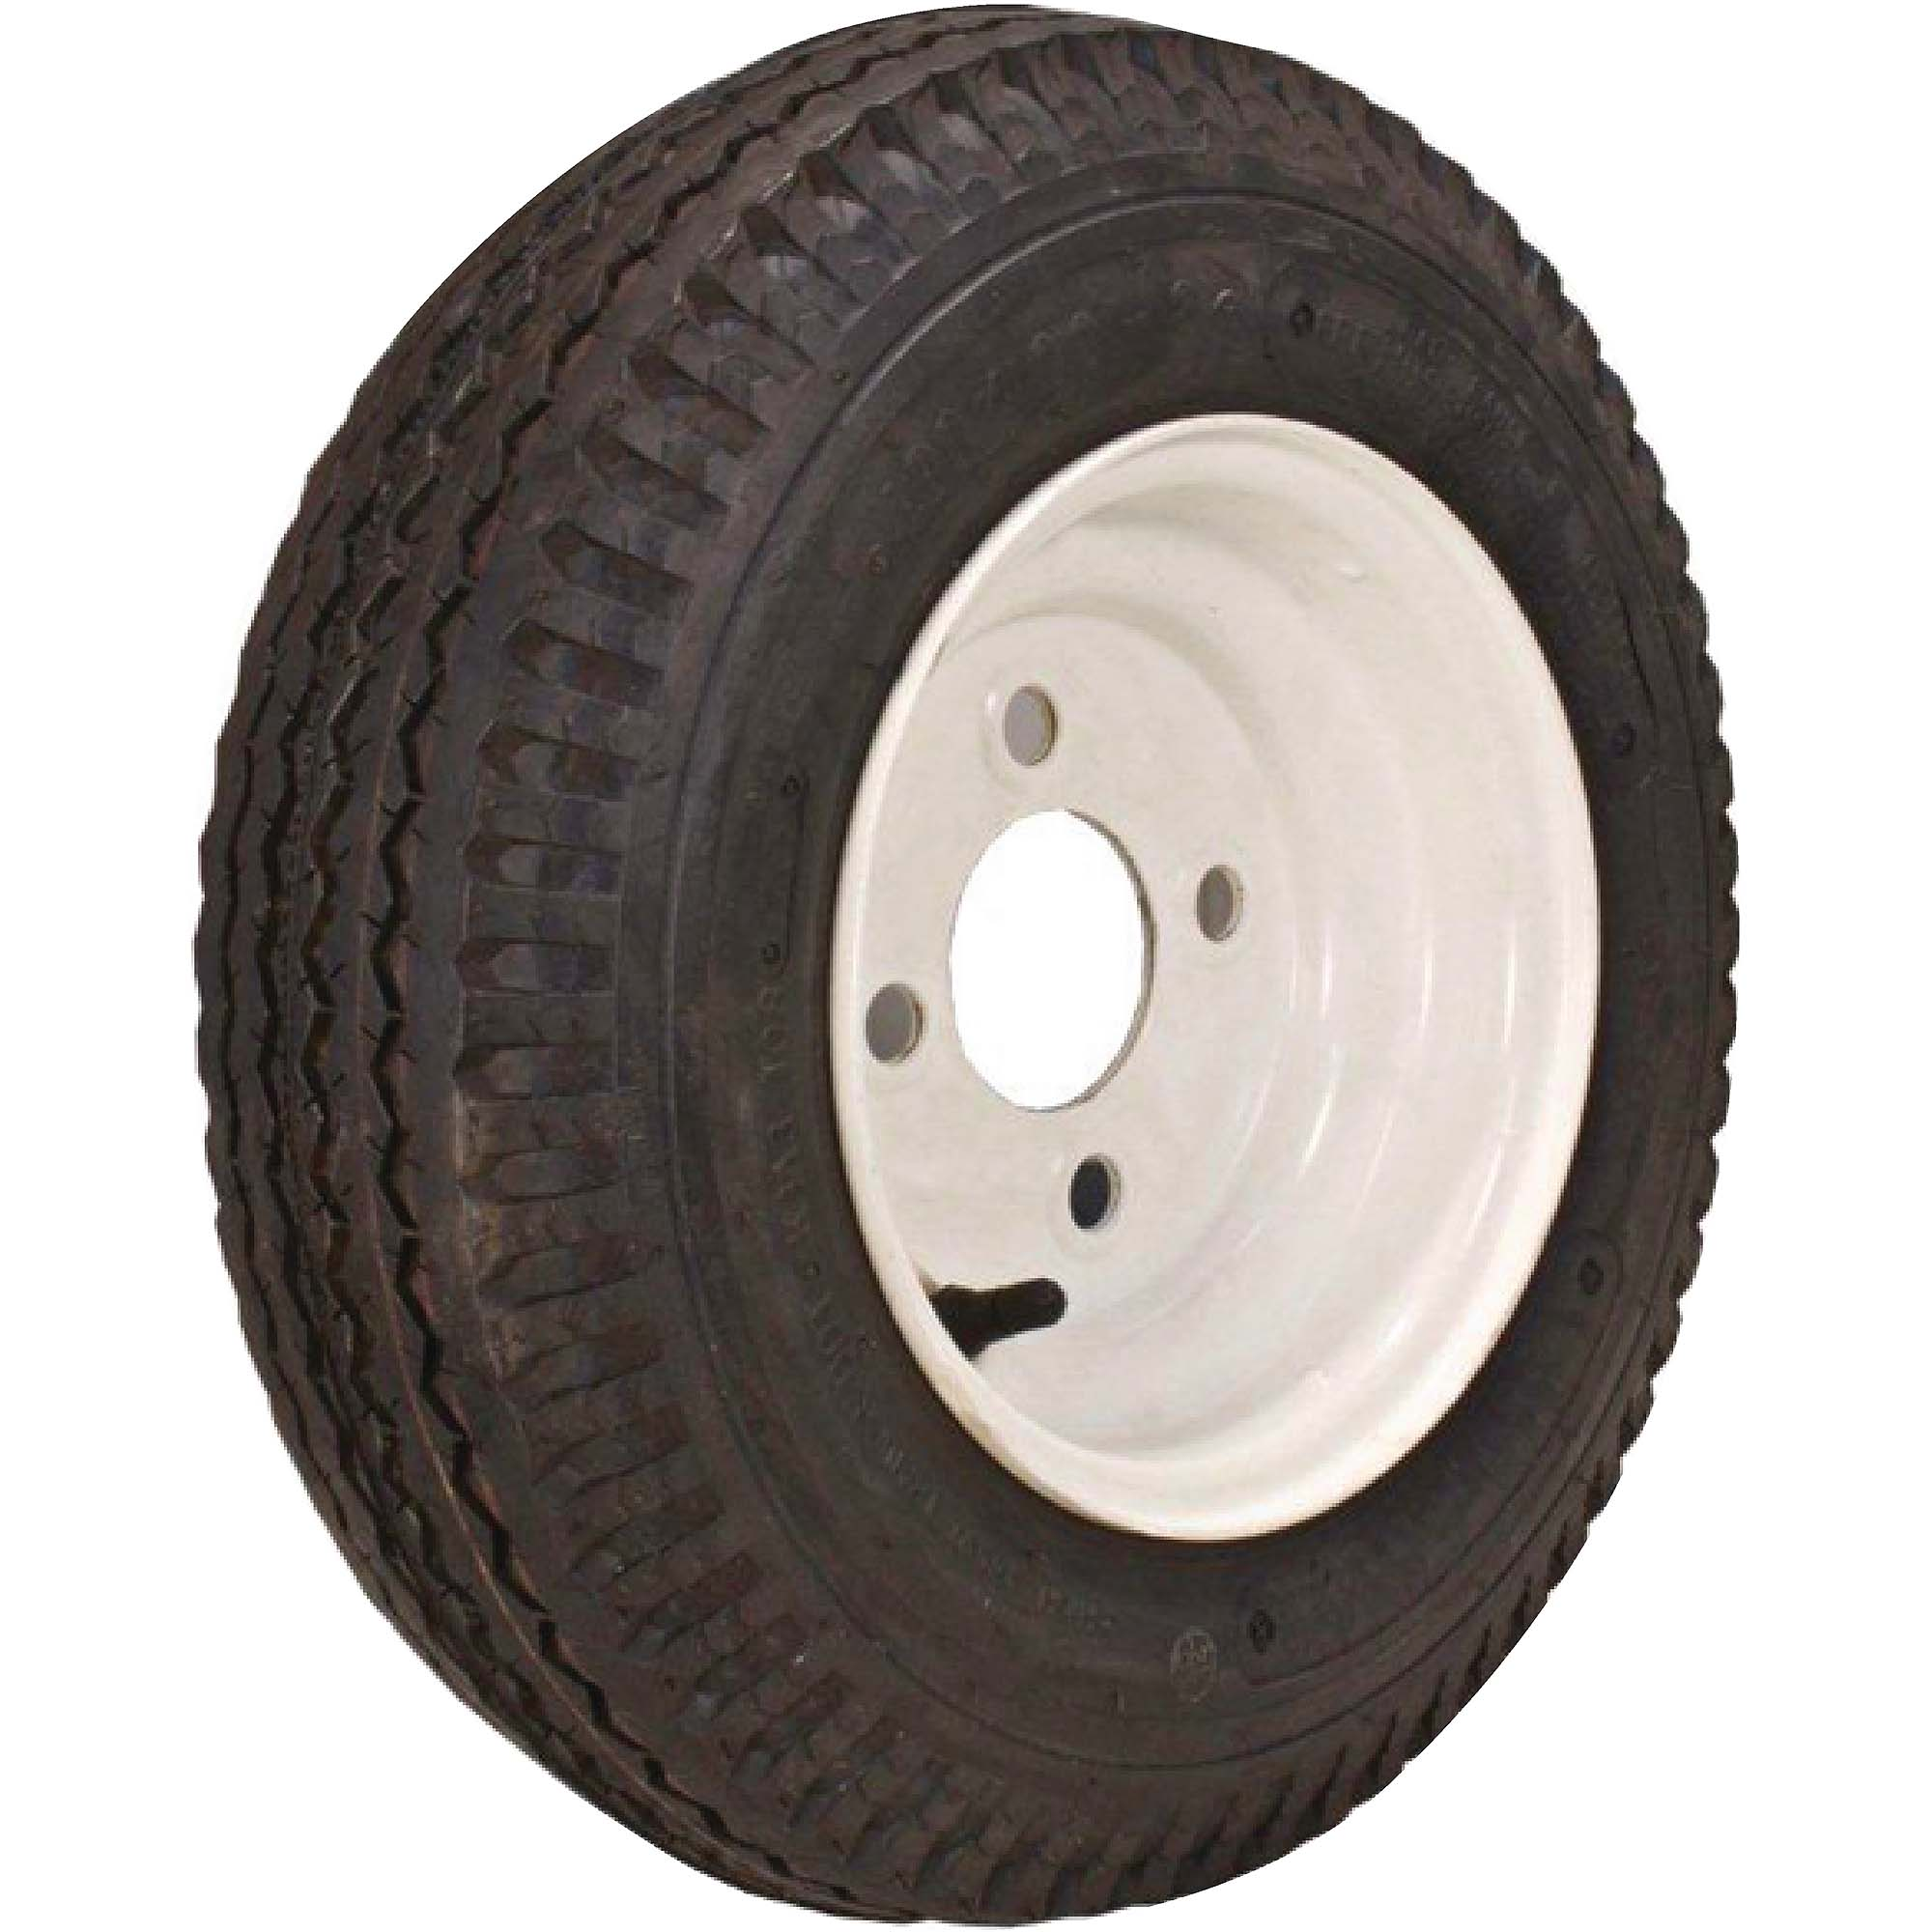 Loadstar Bias Tire and Wheel (Rim) Assembly 480/400-8 5 Hole